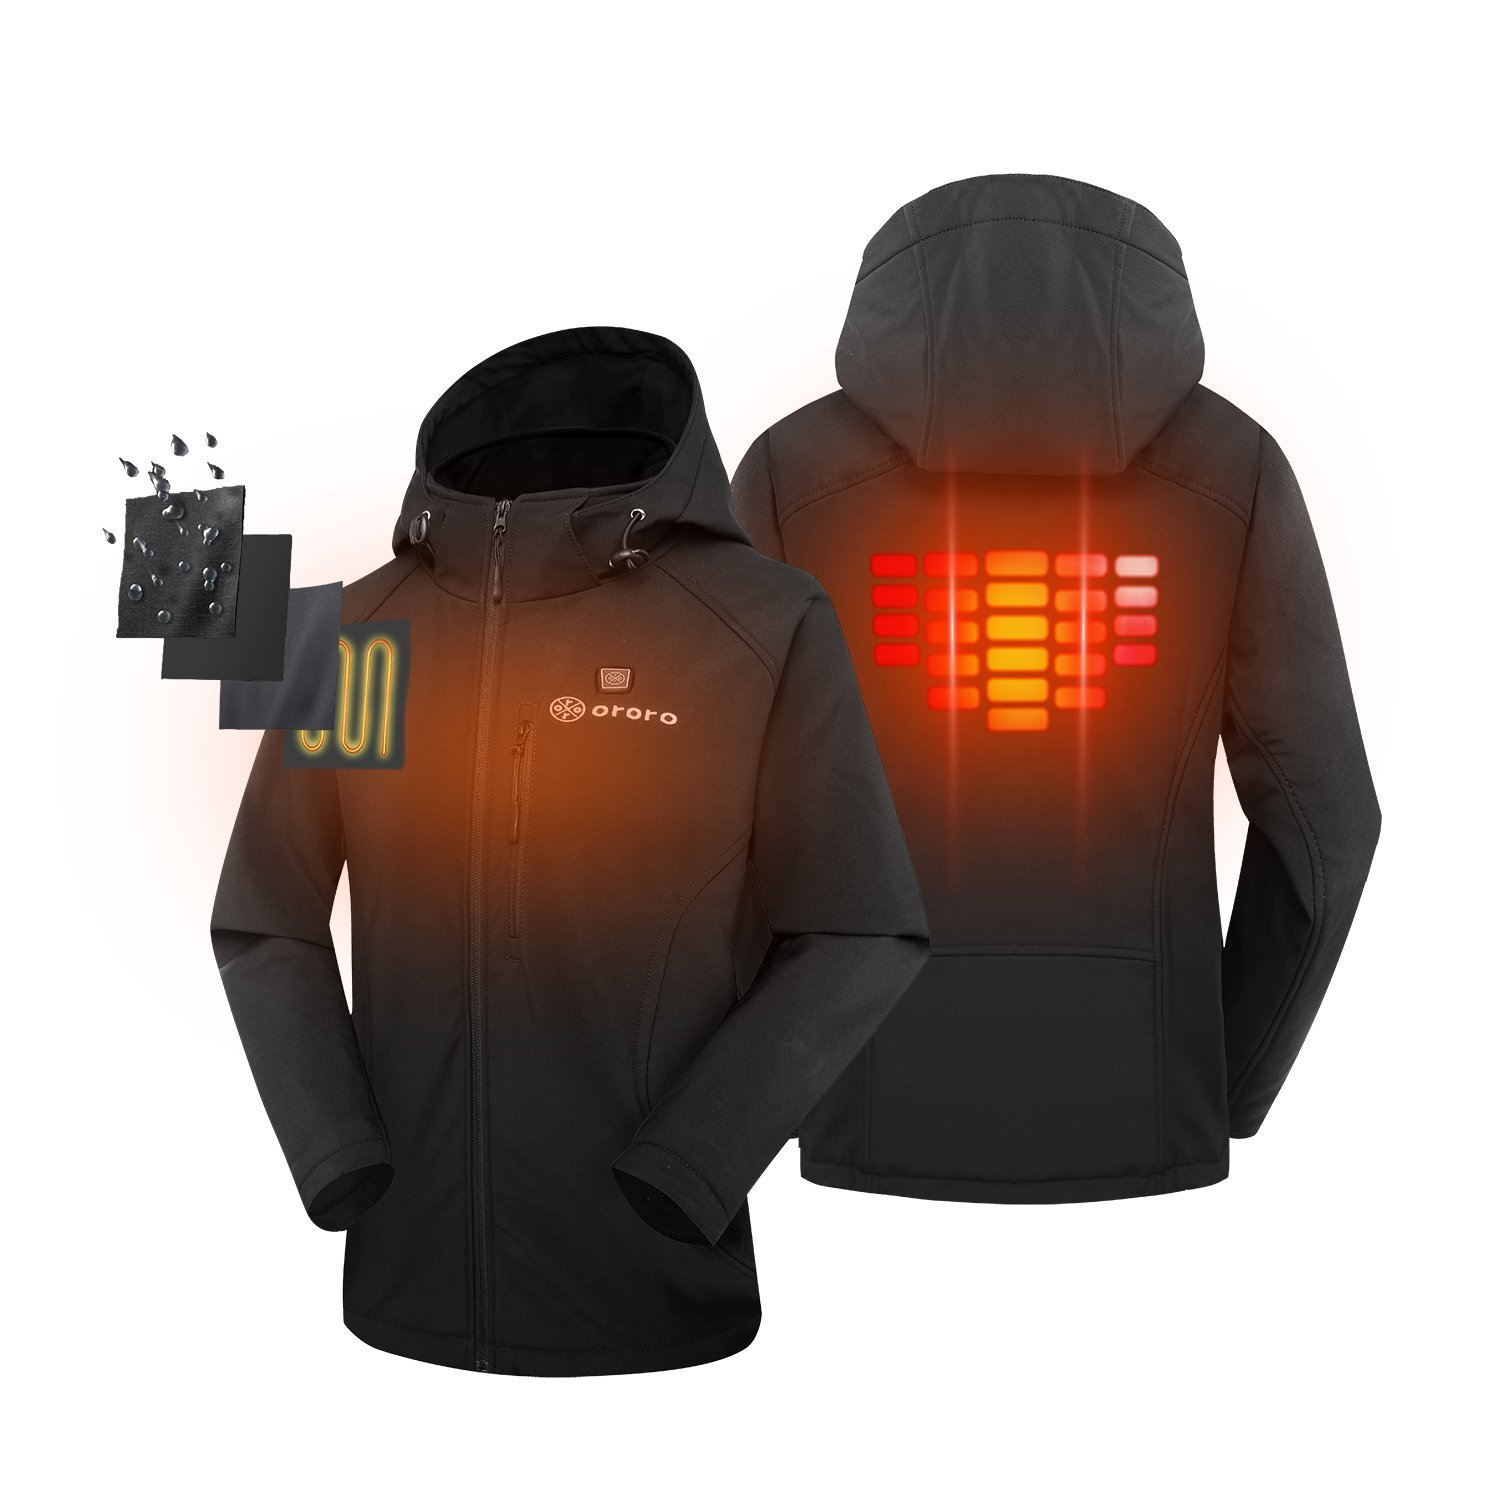 Womens Heated Clothing >> Ororo Women S Slim Fit Heated Jacket With Battery Pack And Detachable Hood